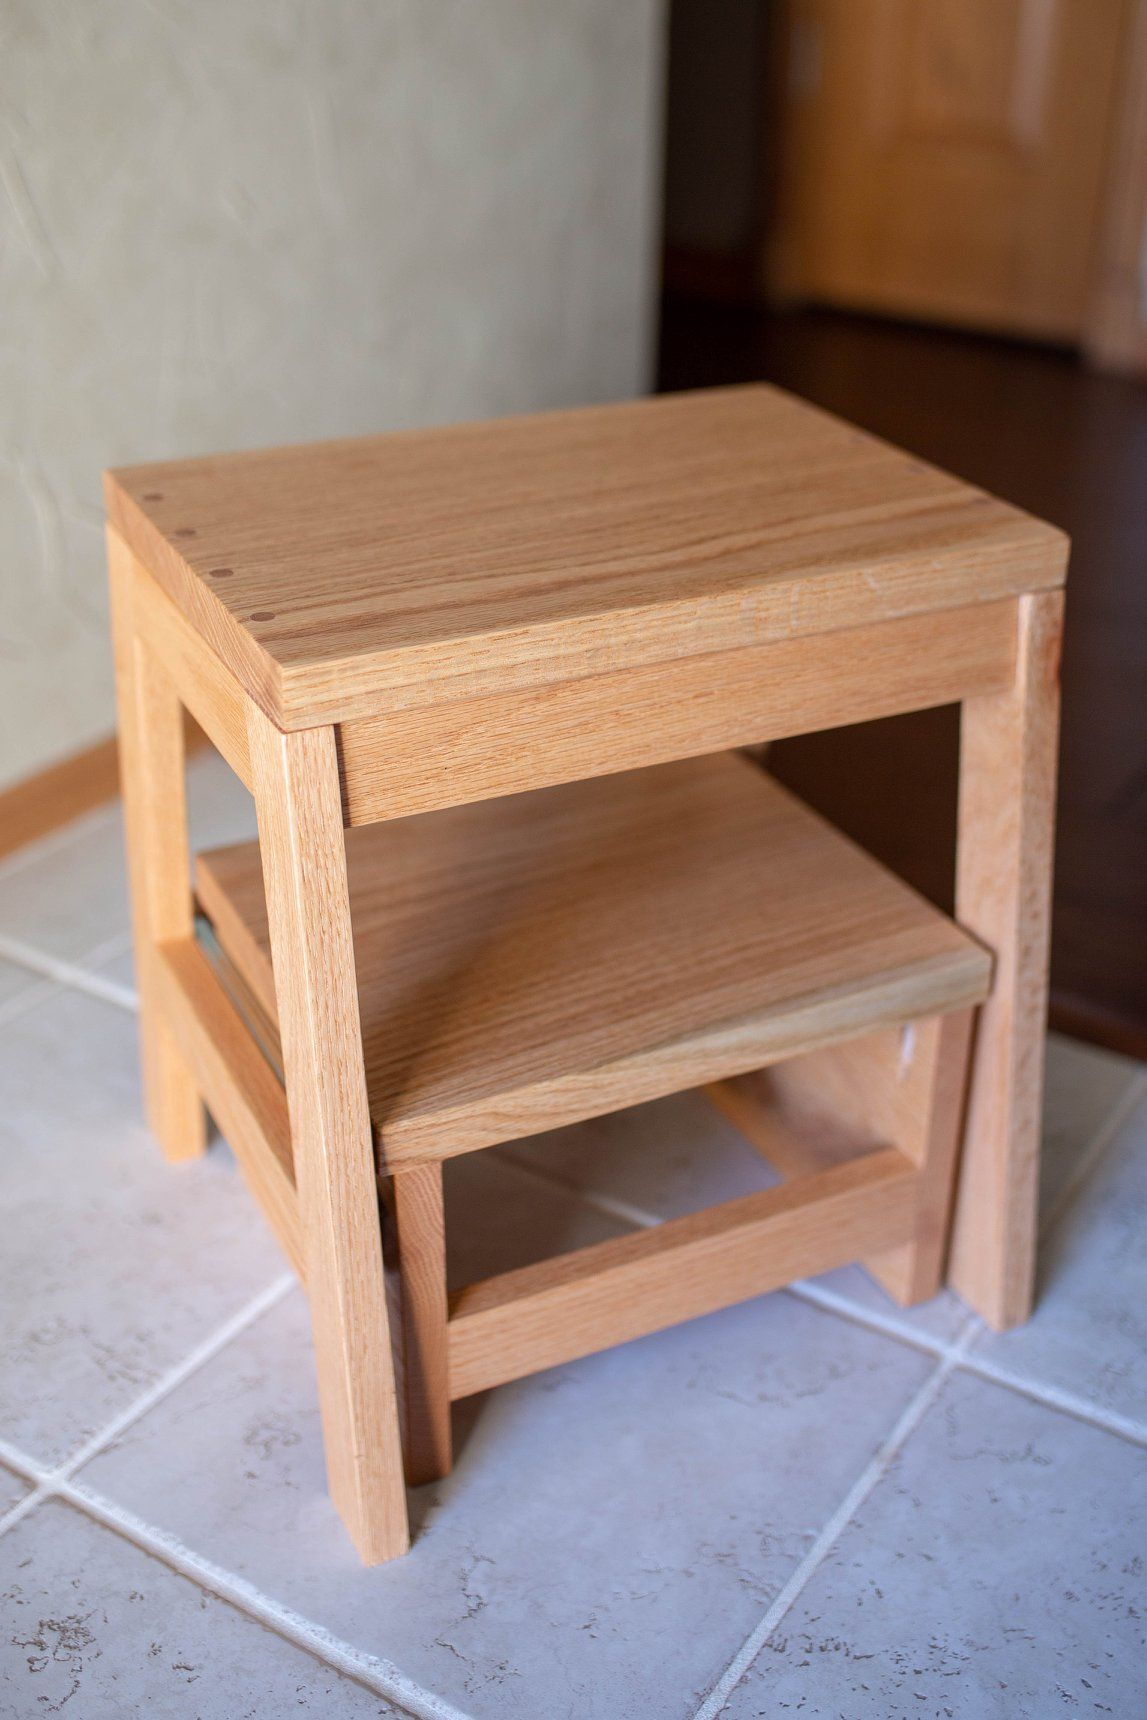 Prime Red Oak Kitchen Step Stool With A Pull Out Step Kitchen Creativecarmelina Interior Chair Design Creativecarmelinacom